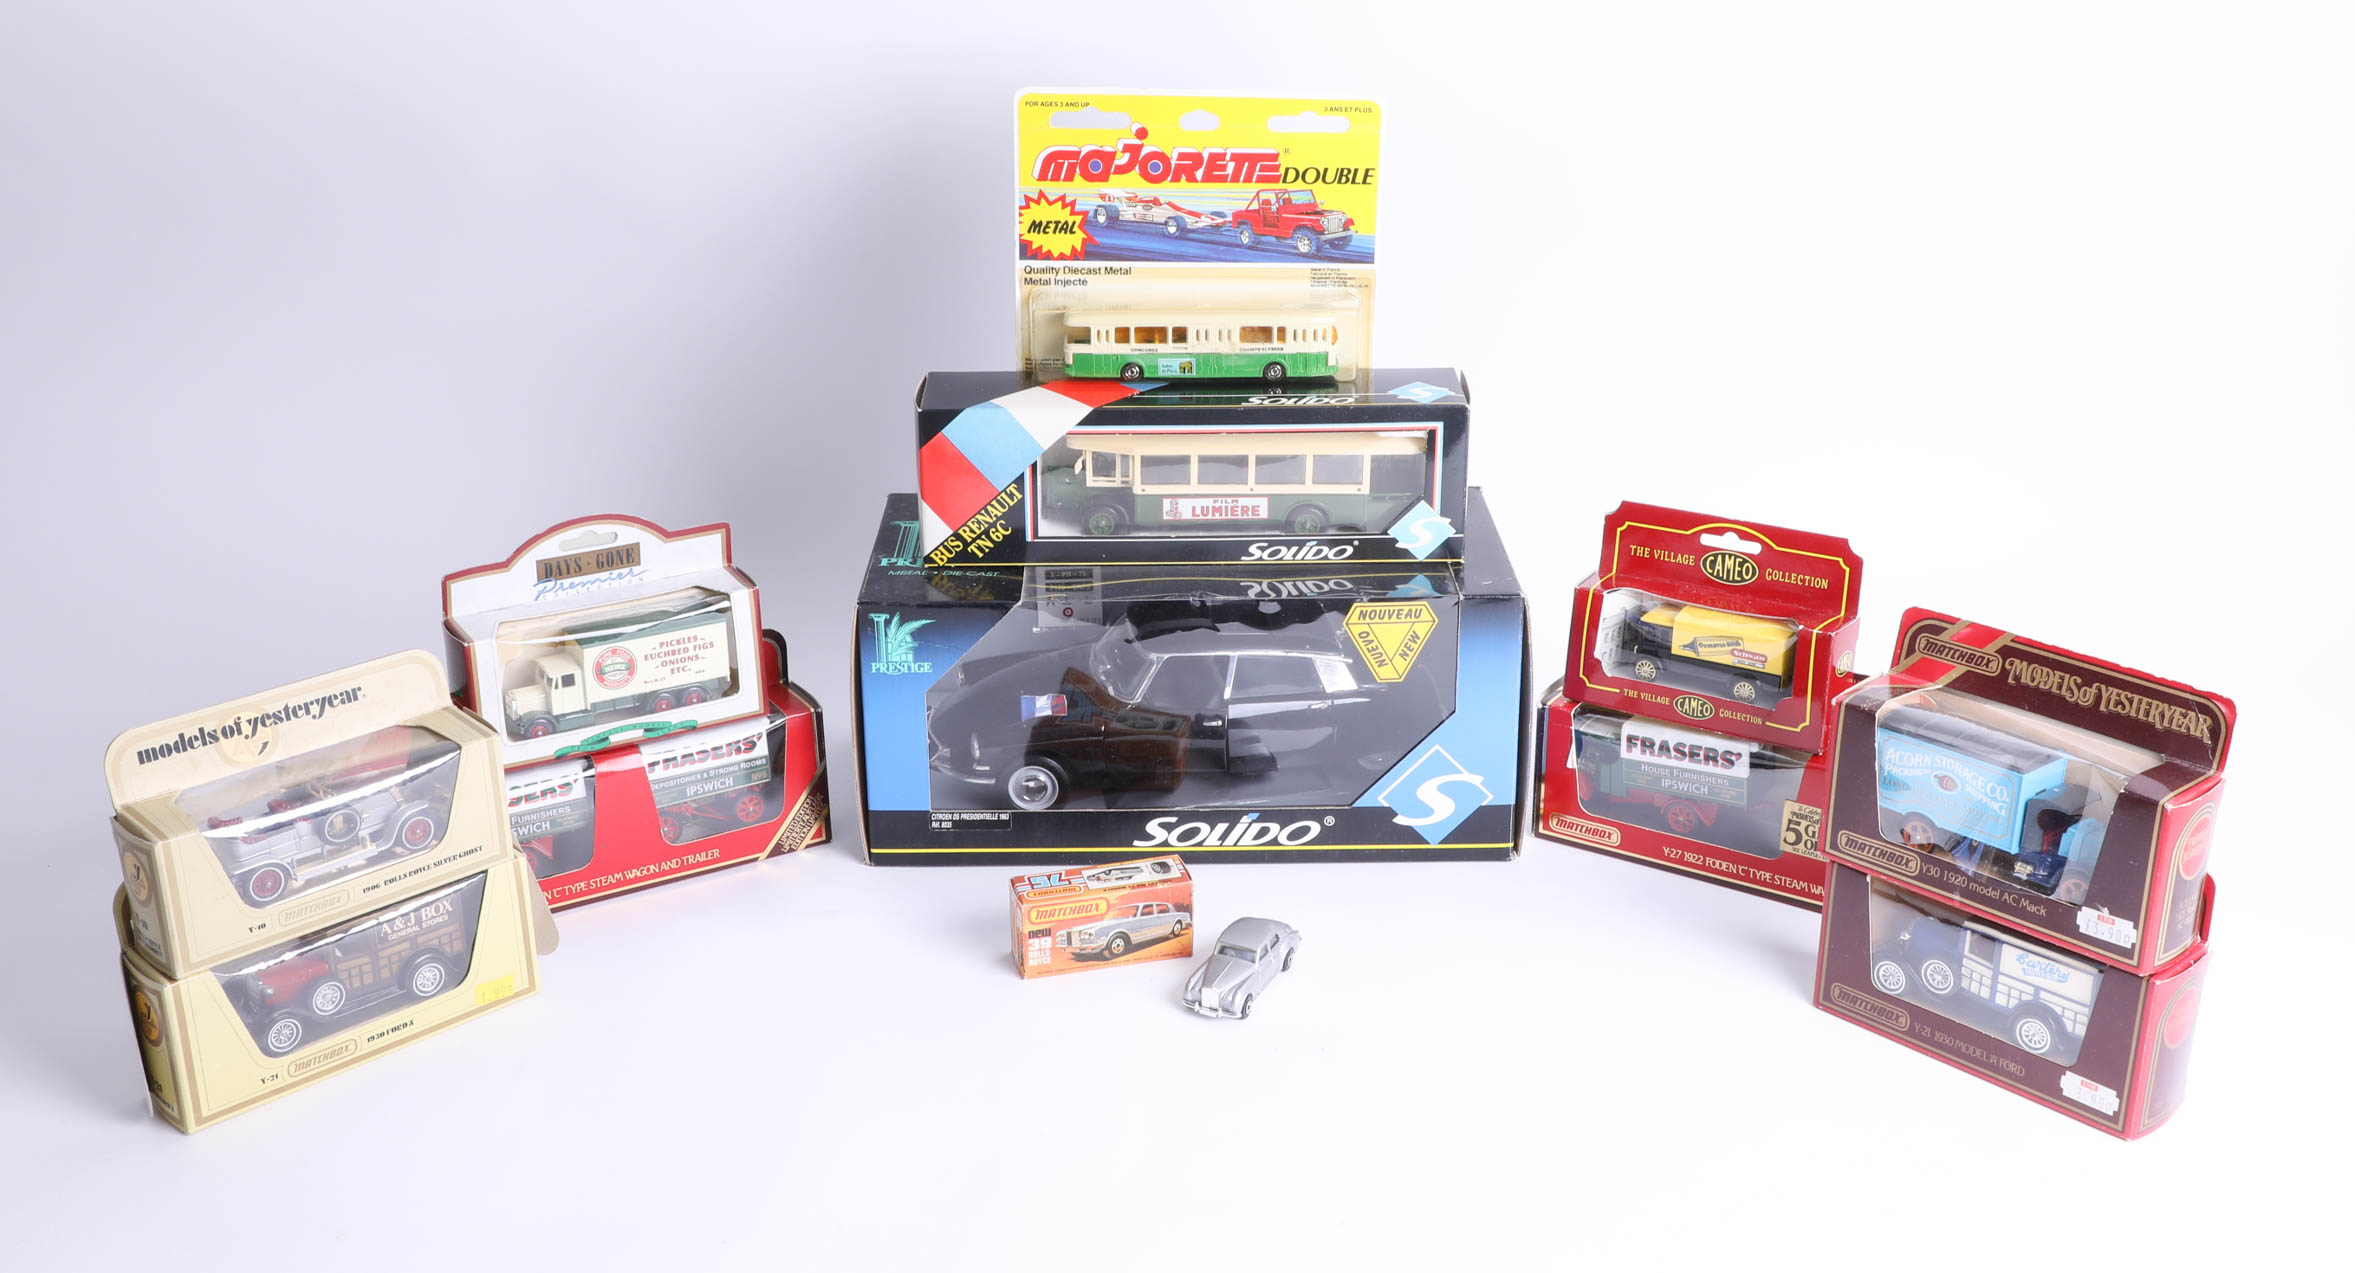 A collection of diecast models, including 'Models of Yesteryear'. - Image 2 of 2